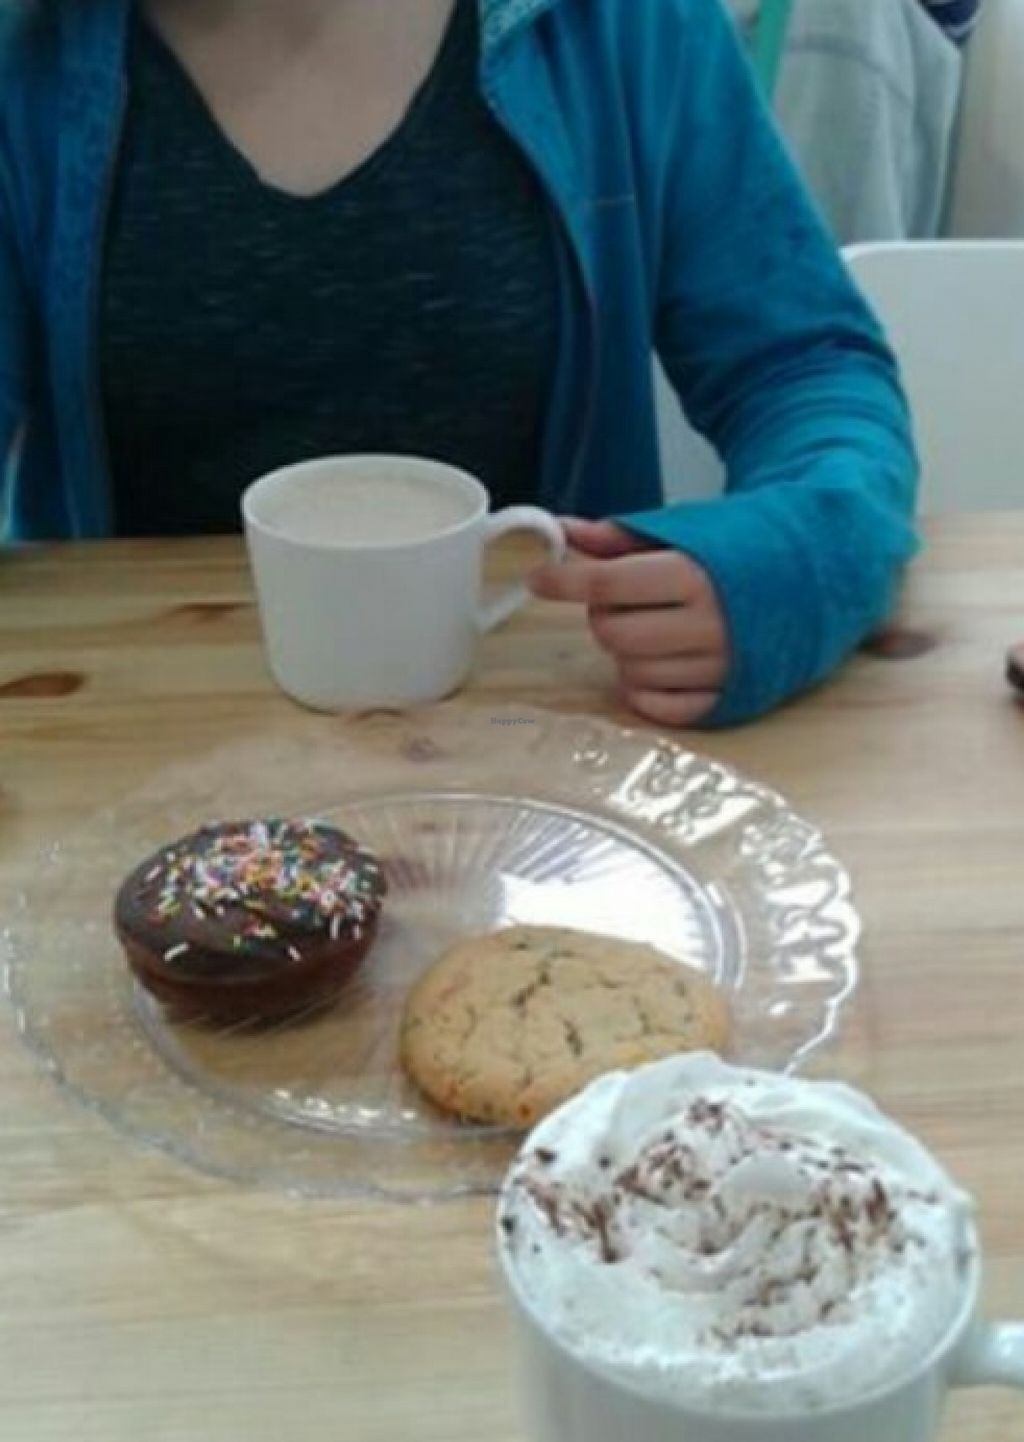 """Photo of Little Jo Berry's  by <a href=""""/members/profile/CatMcD"""">CatMcD</a> <br/>Confetti cookie, hot chocolate w/ almond milk, chai tea w/ almond milk and some other donutty thing  <br/> June 8, 2016  - <a href='/contact/abuse/image/71893/152800'>Report</a>"""